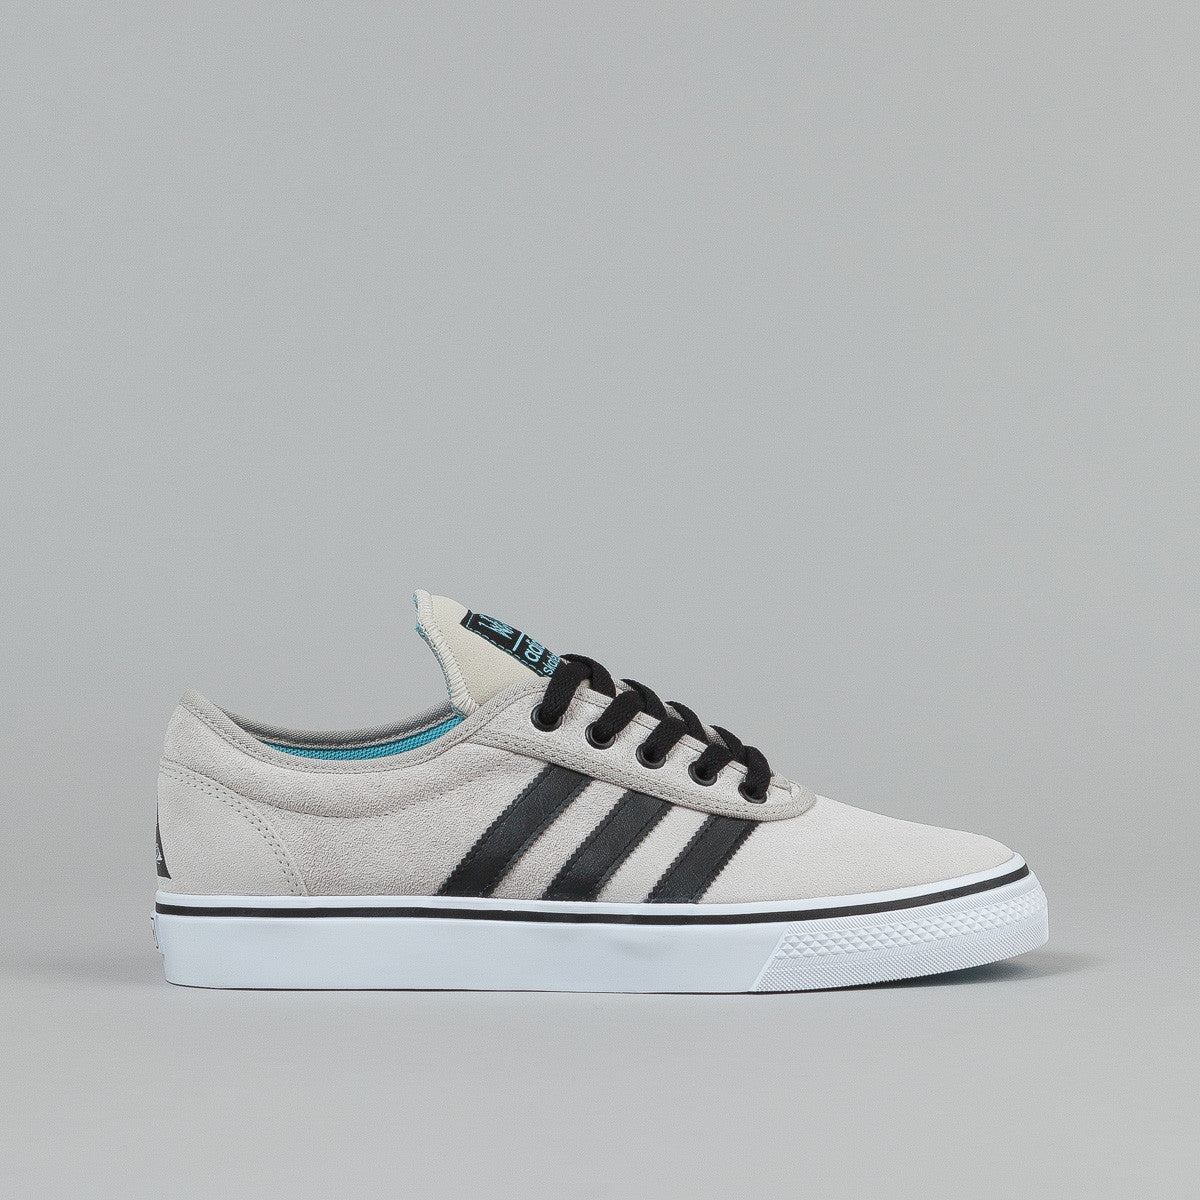 Adidas X Welcome Skateboards Adi-Ease ADV Shoes